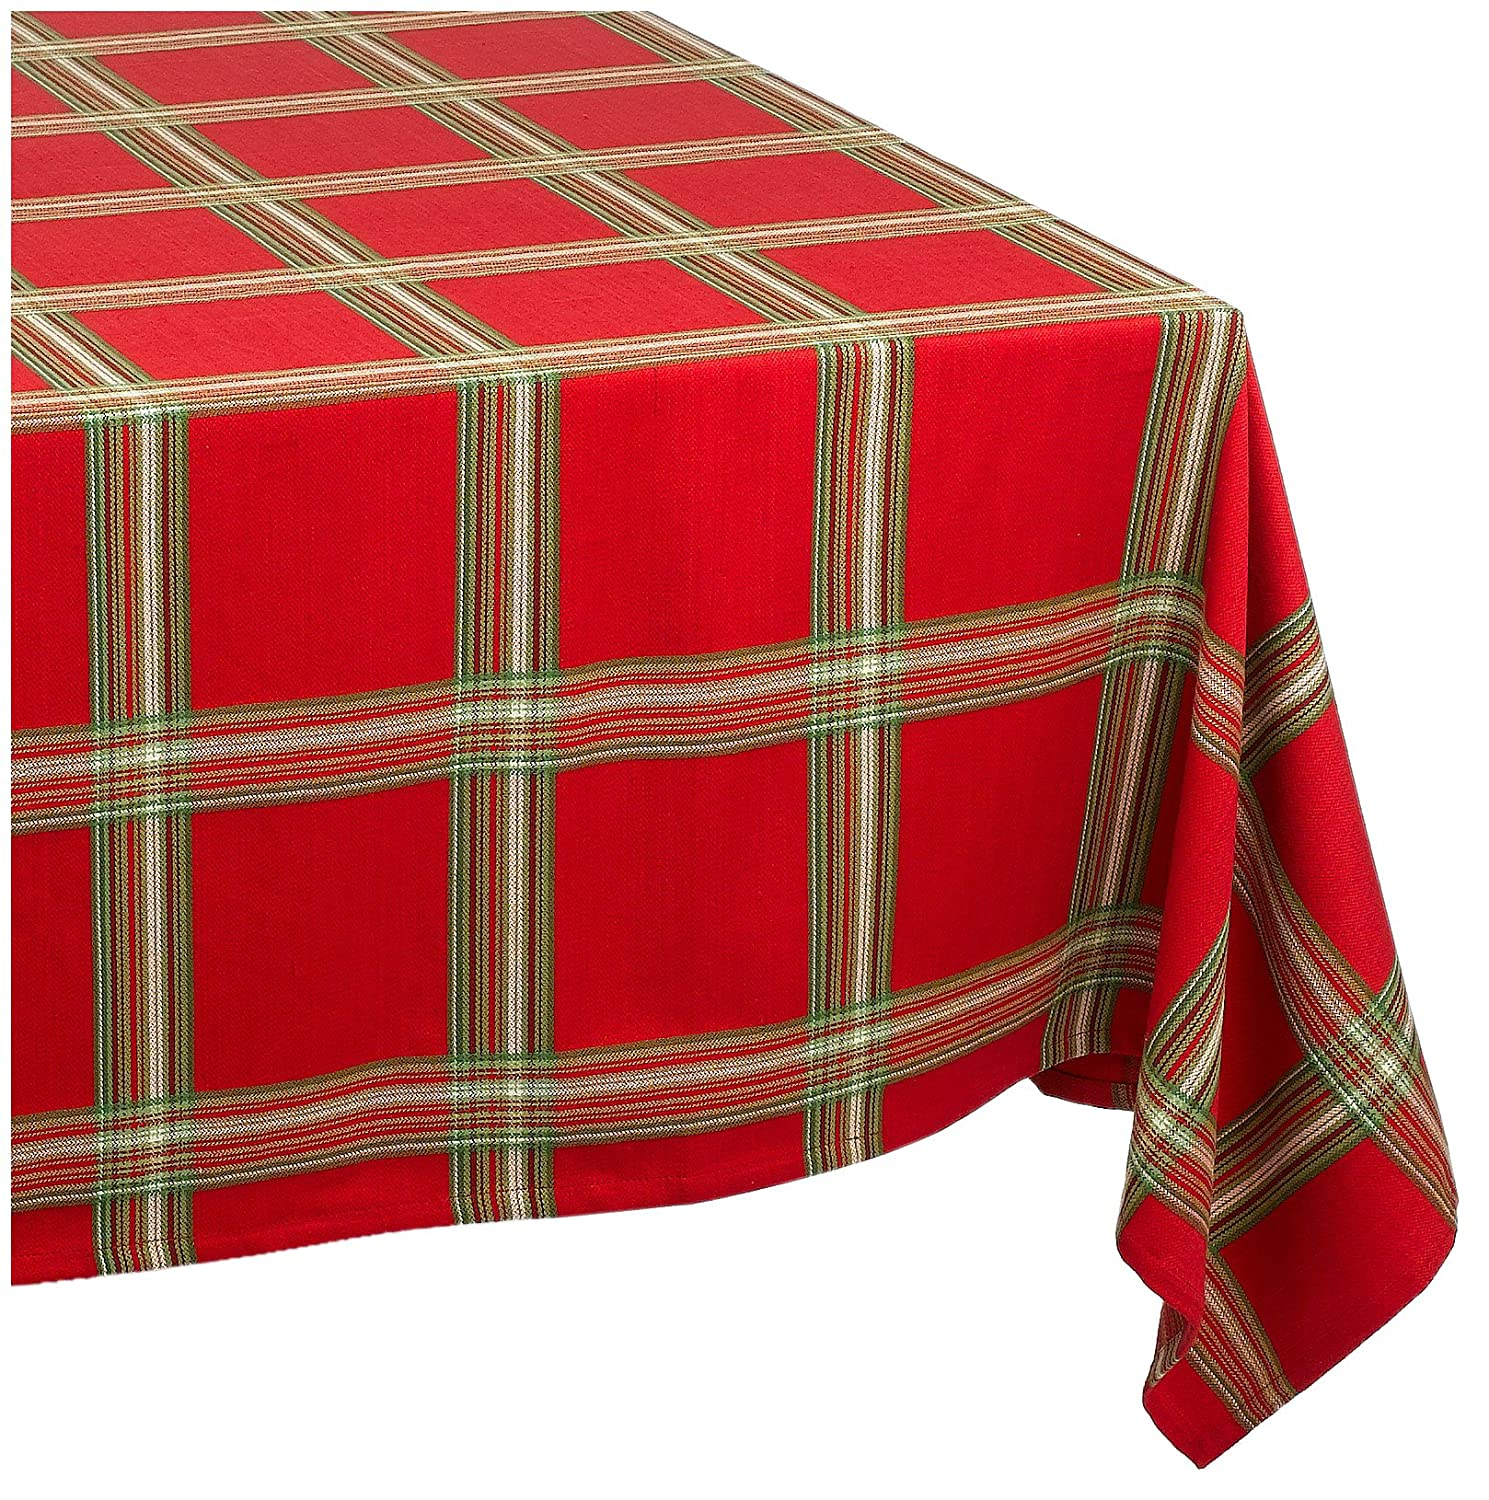 Amazon.com: Lenox Holiday Gathering Plaid Tablecloth, 60 By 120 Inch  Oblong/Rectangle: Home U0026 Kitchen